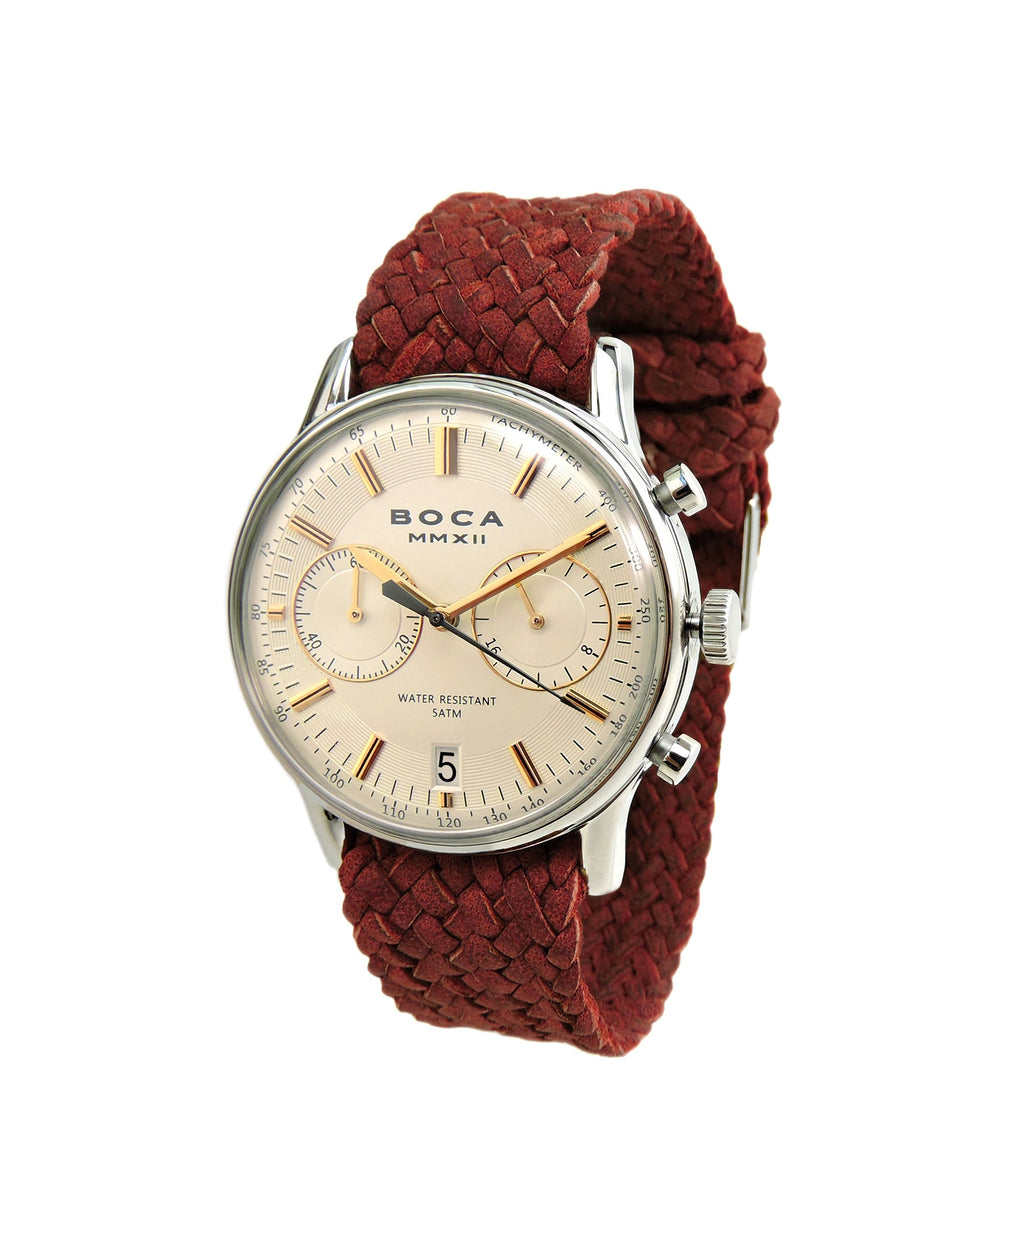 Metropole Chrono Beige with Red Wristband - BOCA MMXII - Official website